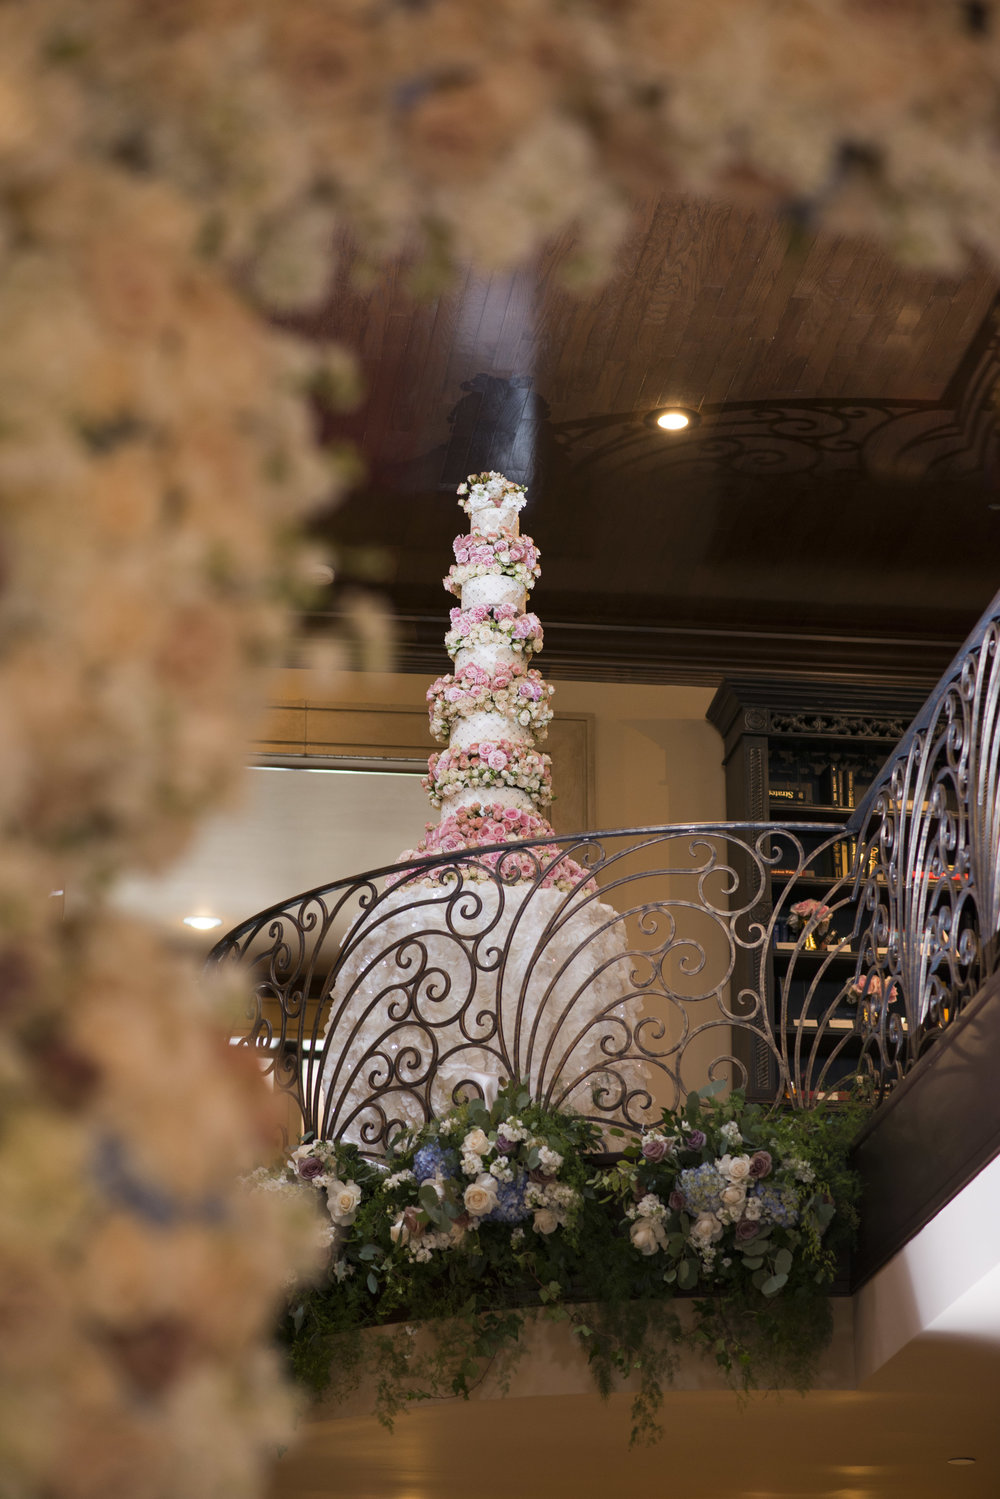 10 tier wedding cake with flowers and fondant in a juliet balcony. Las Vegas Wedding Planner Andrea Eppolito. Cake y Four Seasons. Photo by AltF.